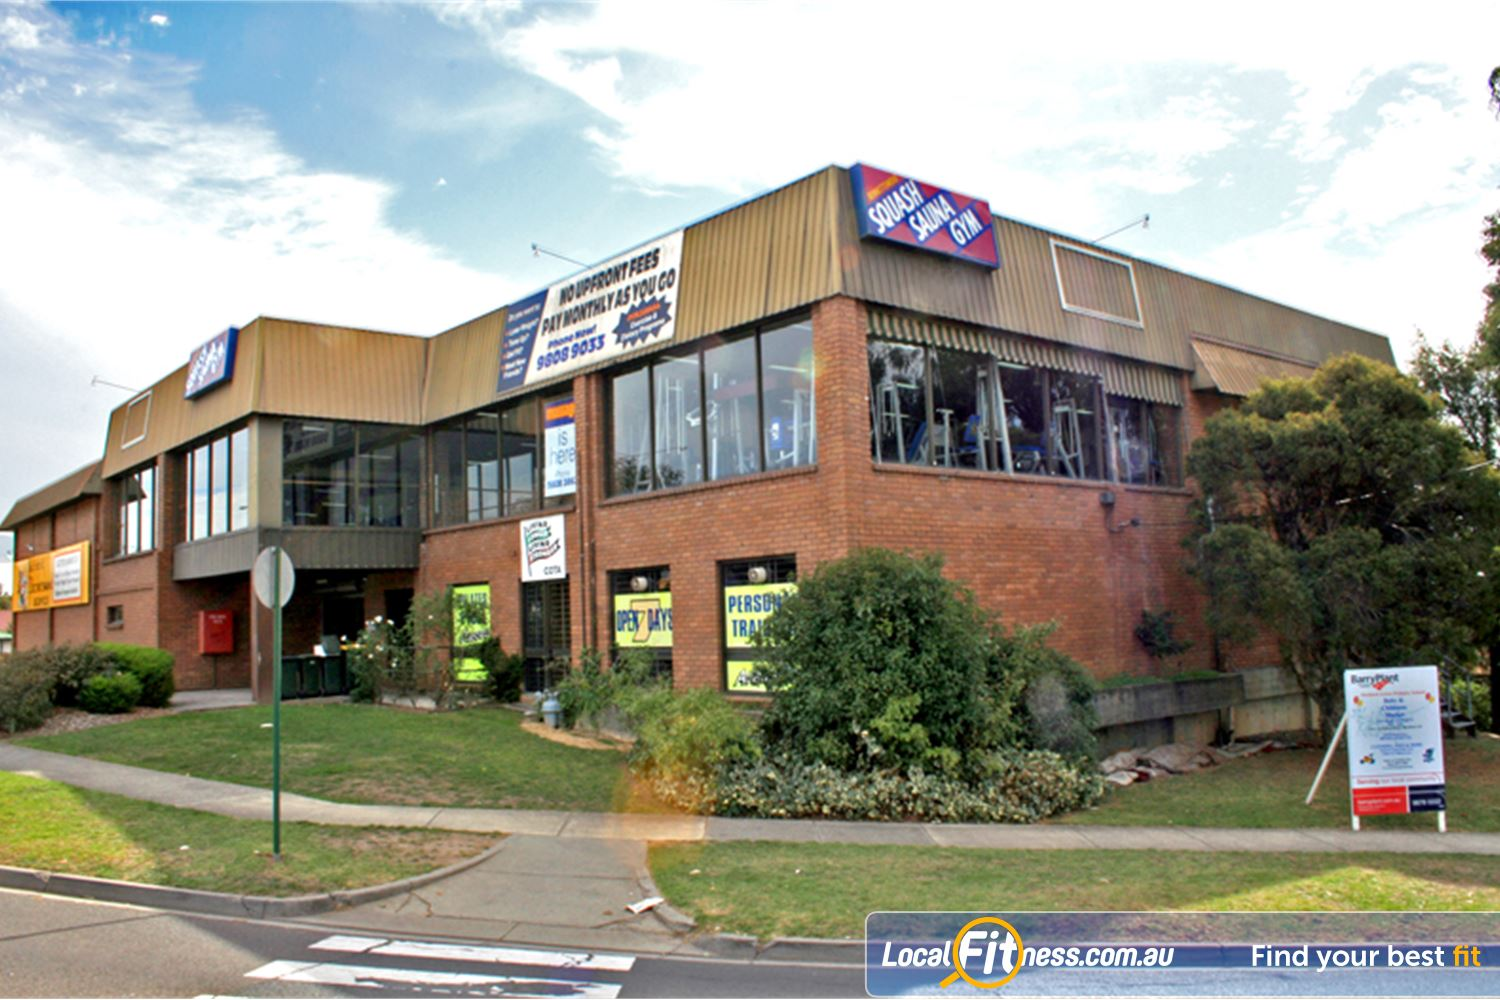 Bennettswood Fitness Centre front photo